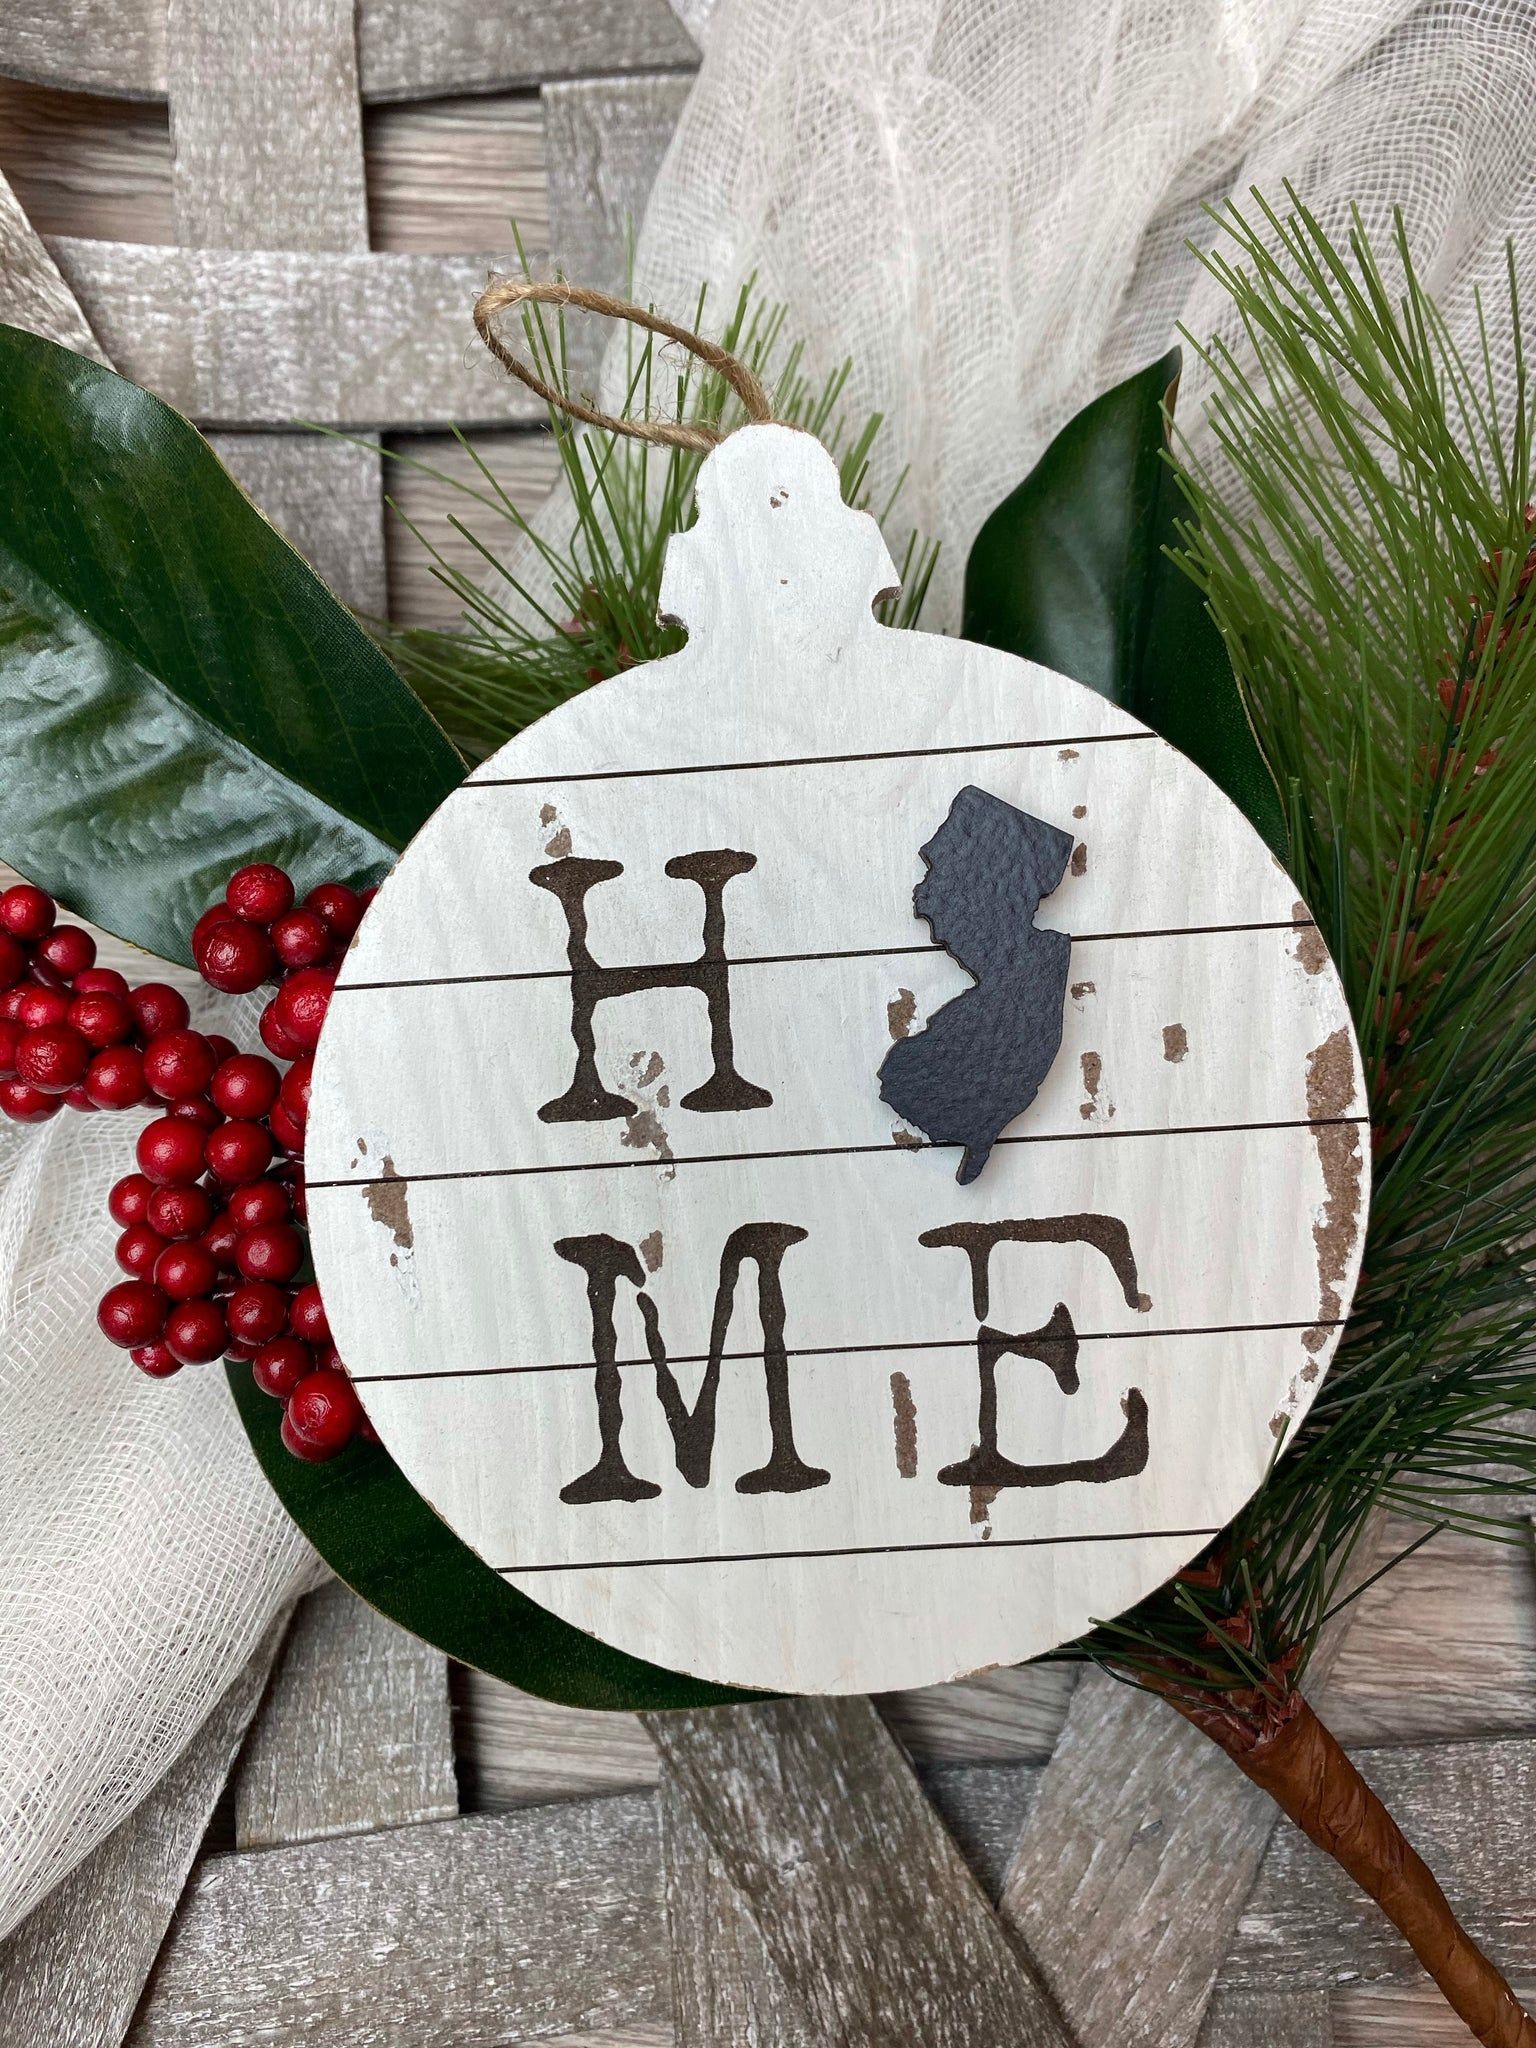 Home NJ ornament with Large Raised State Silhouette